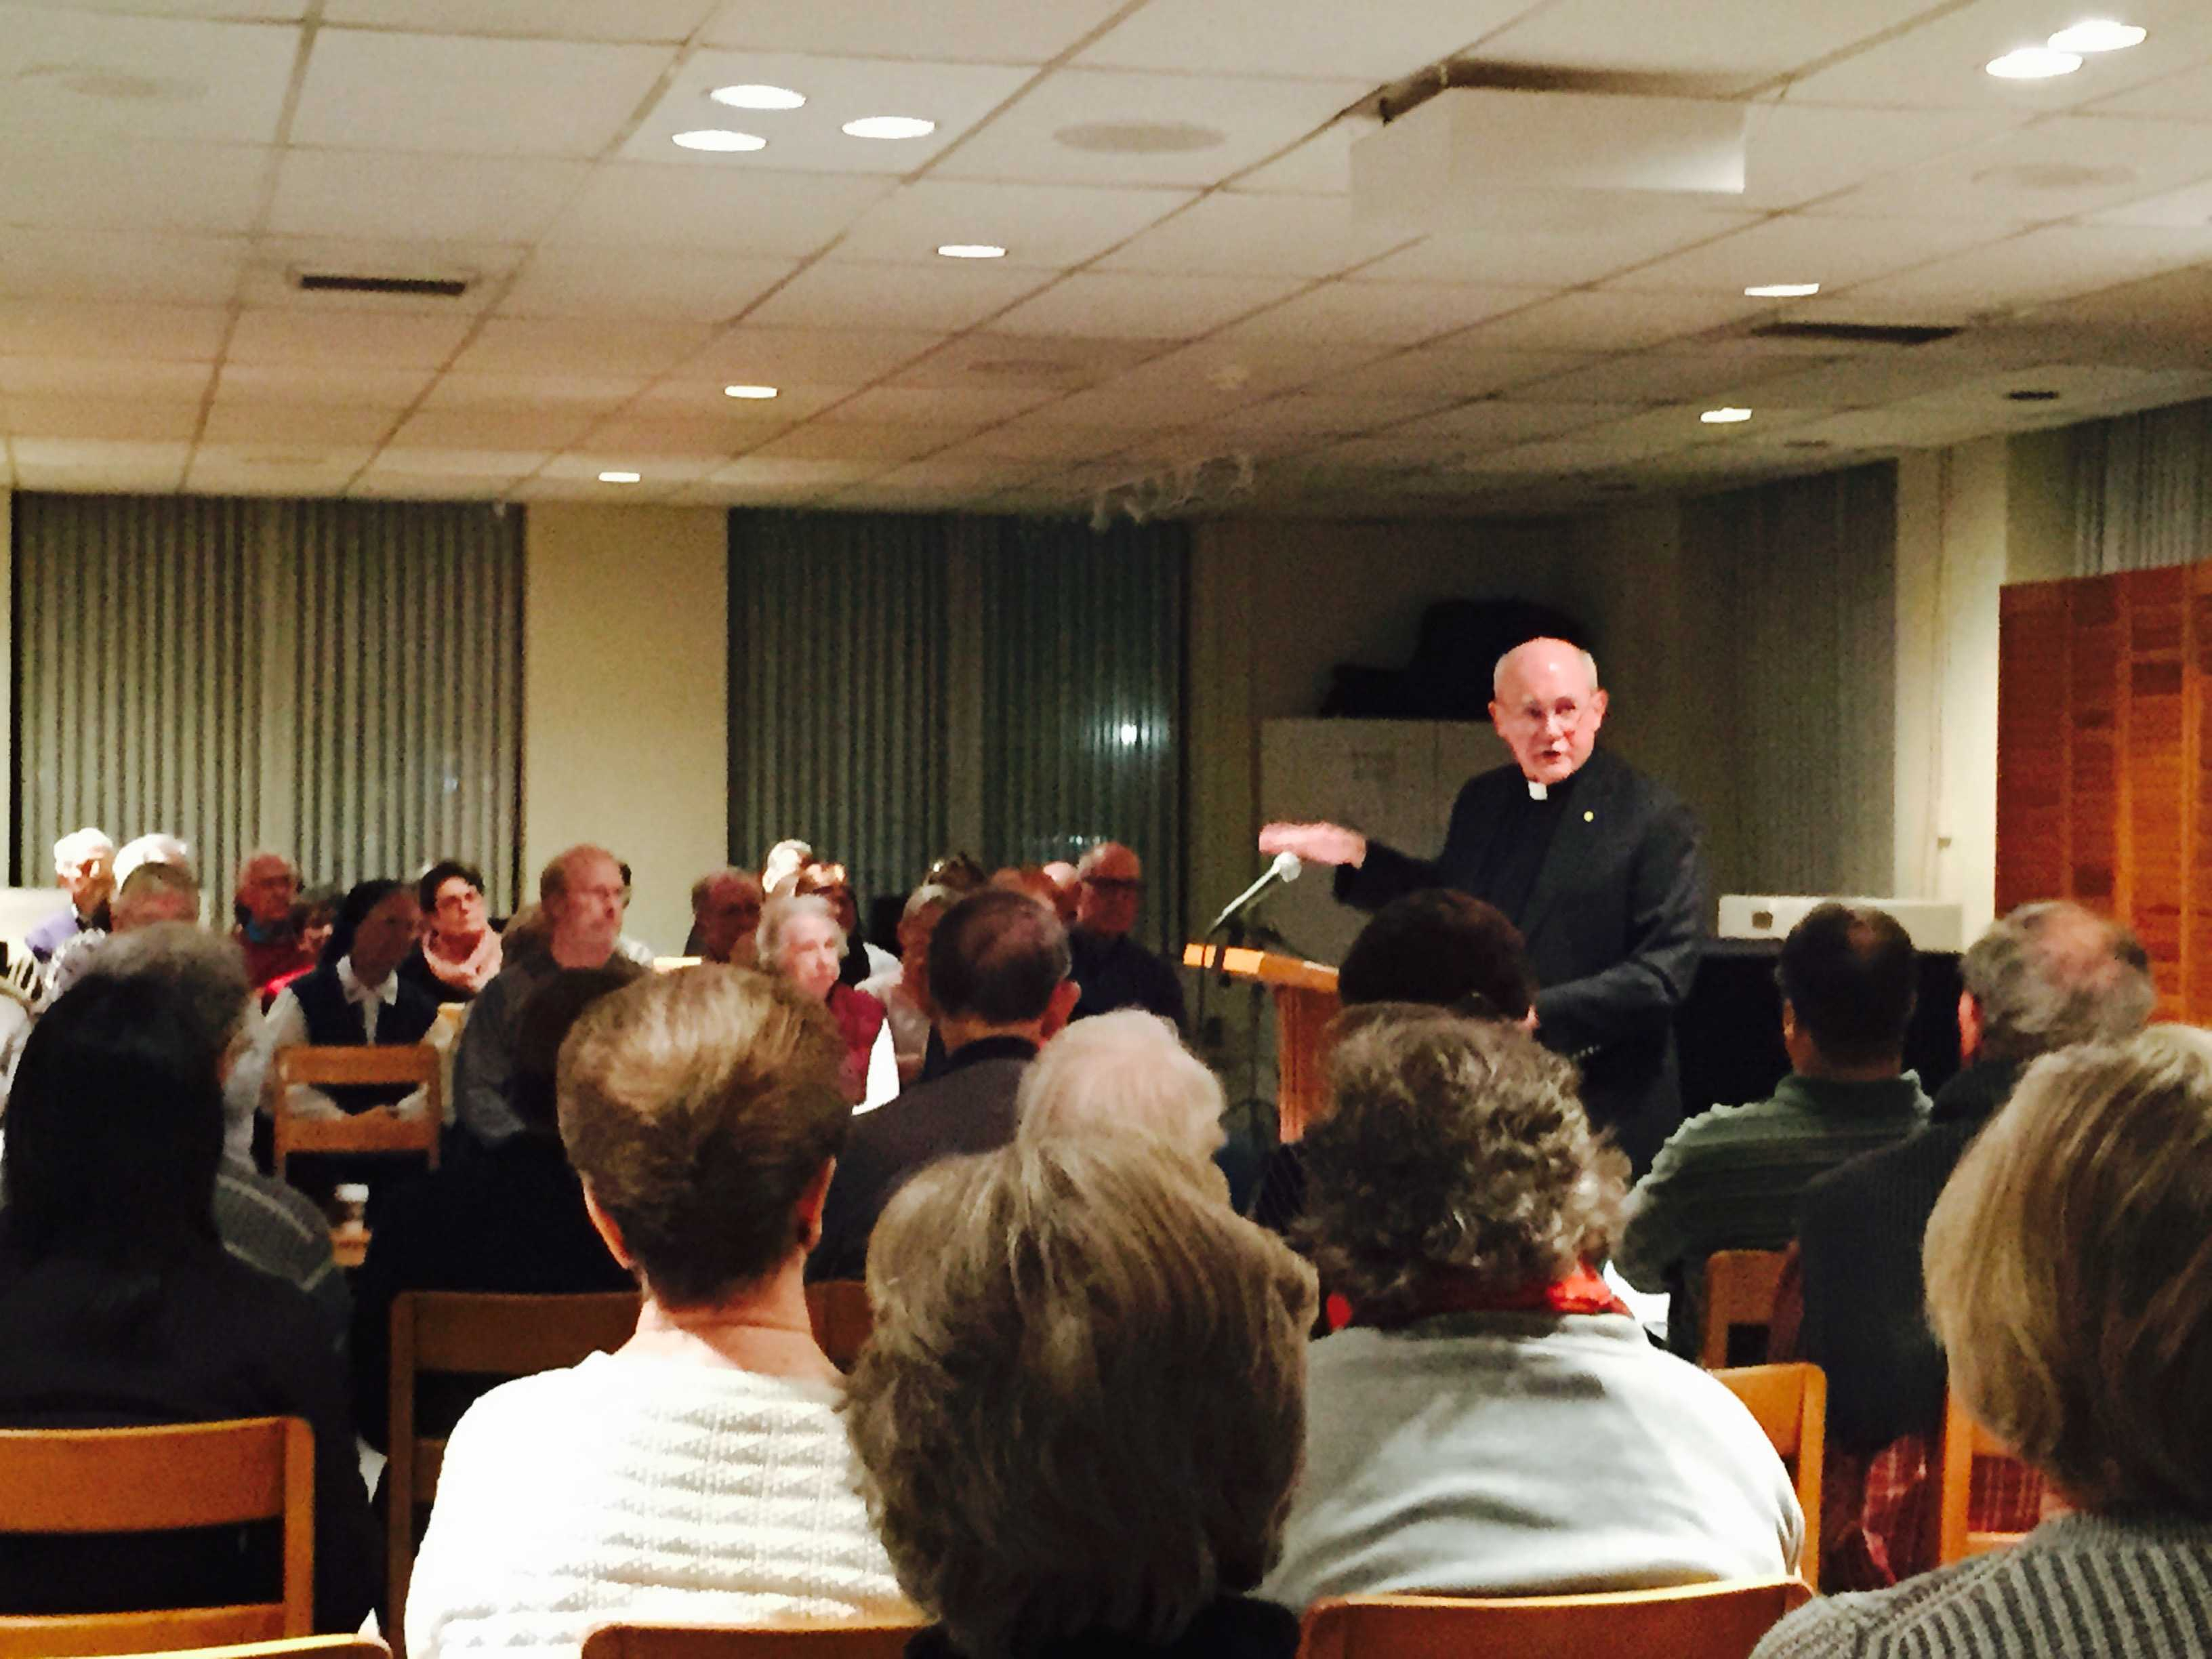 Campus lenten series discusses the spirituality of Pope Francis